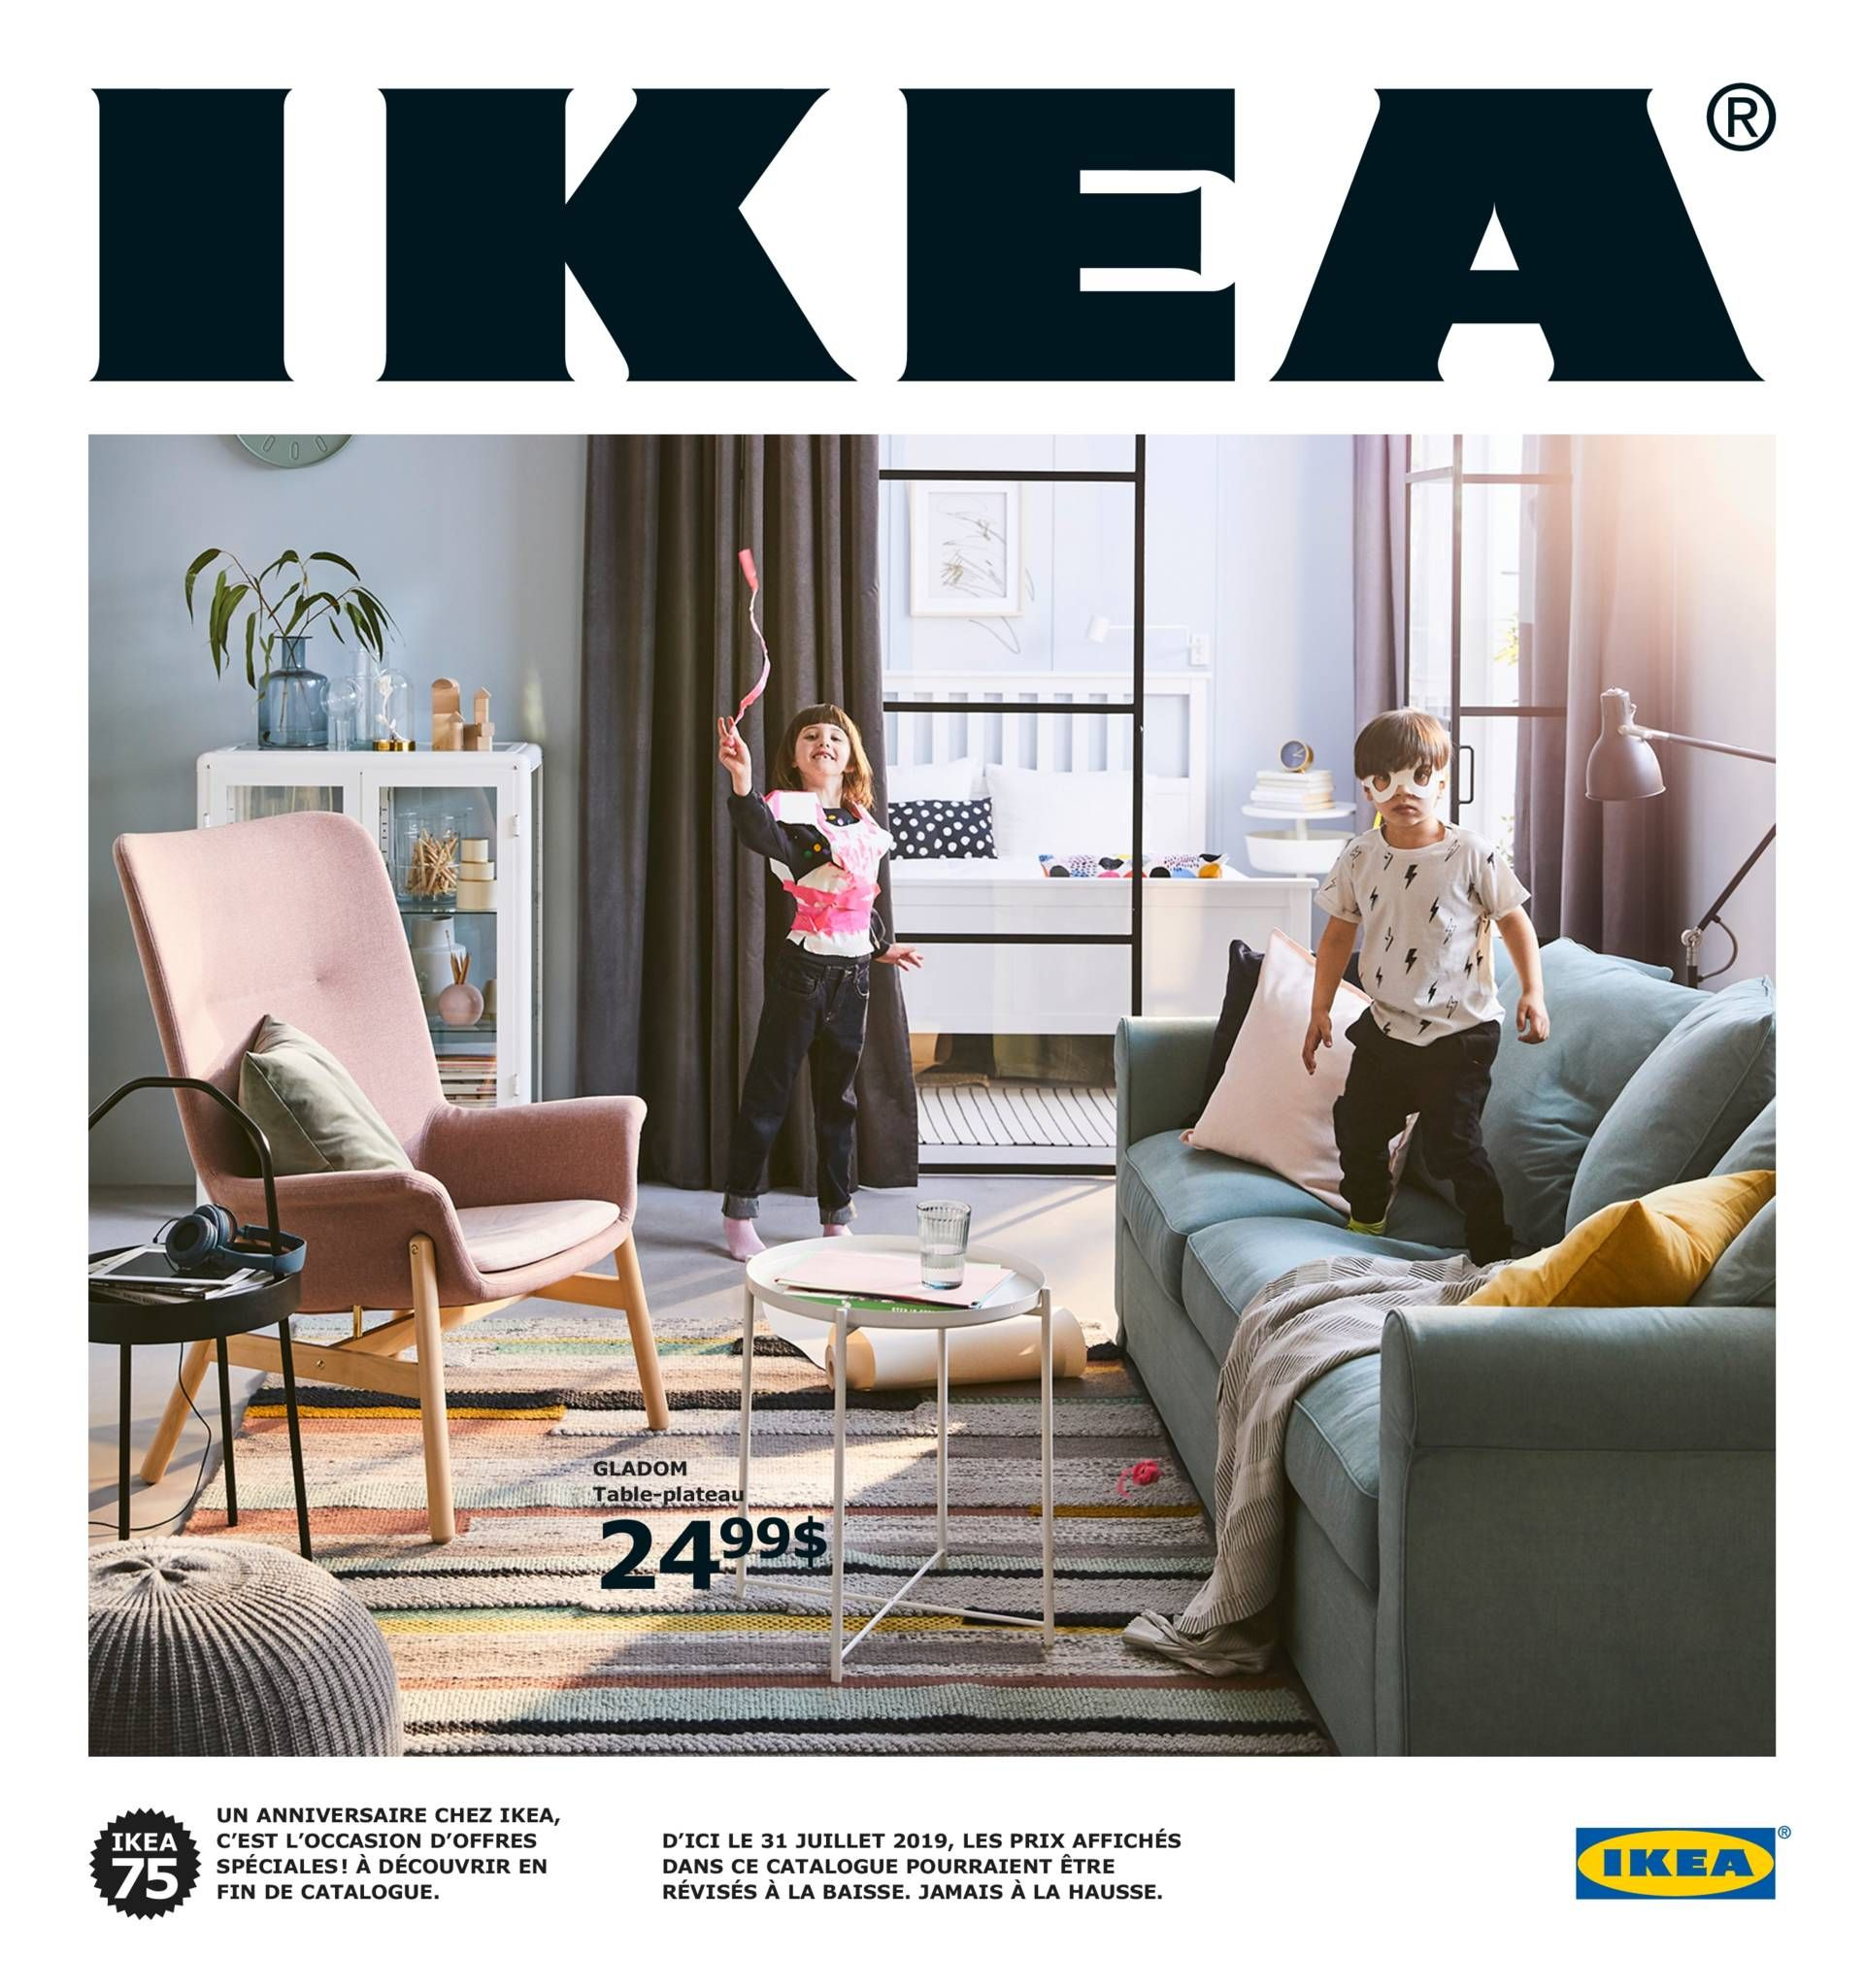 Catalogue Ikea 2019 Catalogue Ikea 2019 Ikea Catalog Ikea Kitchen Catalogue Ikea